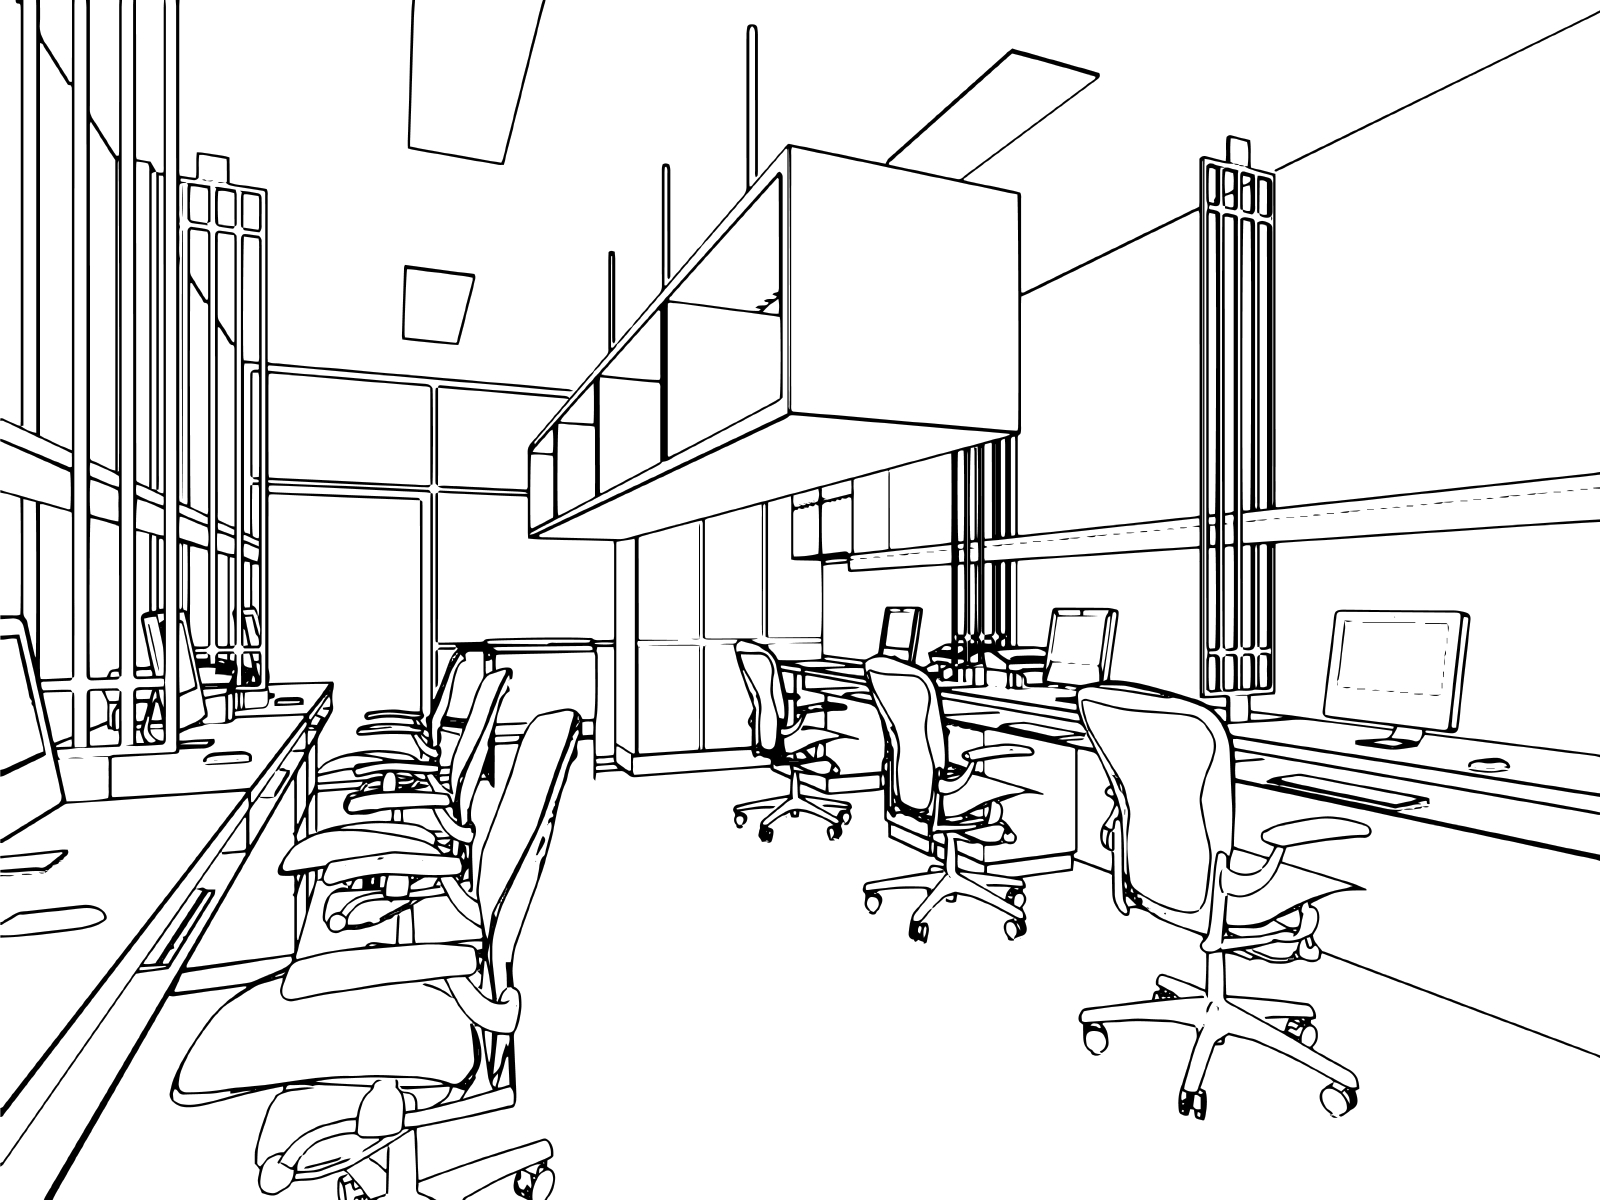 outline sketch of a interior office build out